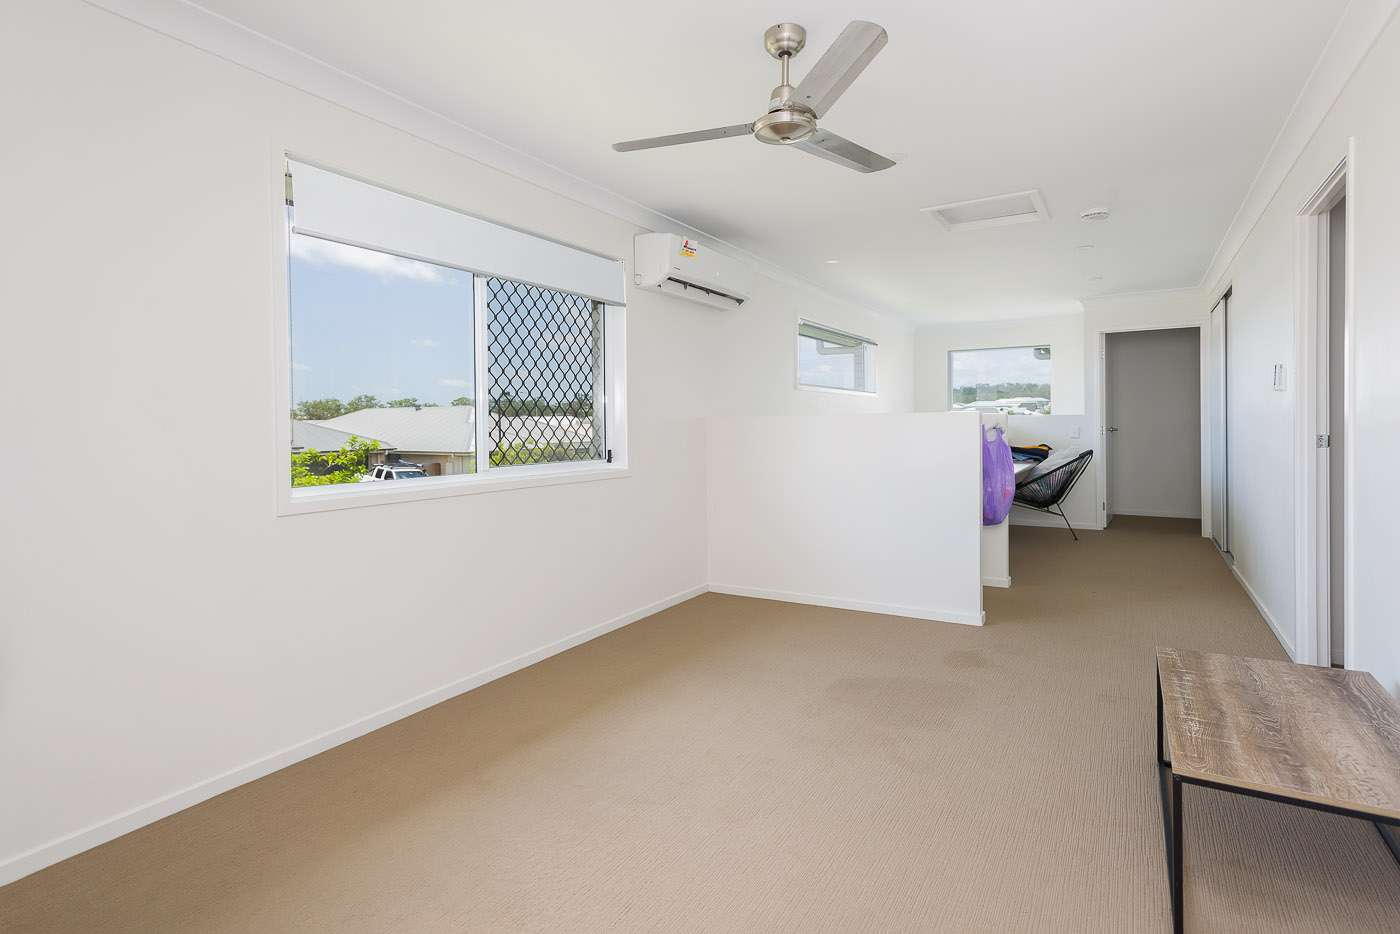 Sixth view of Homely house listing, 1 Firestone Avenue, Pimpama QLD 4209